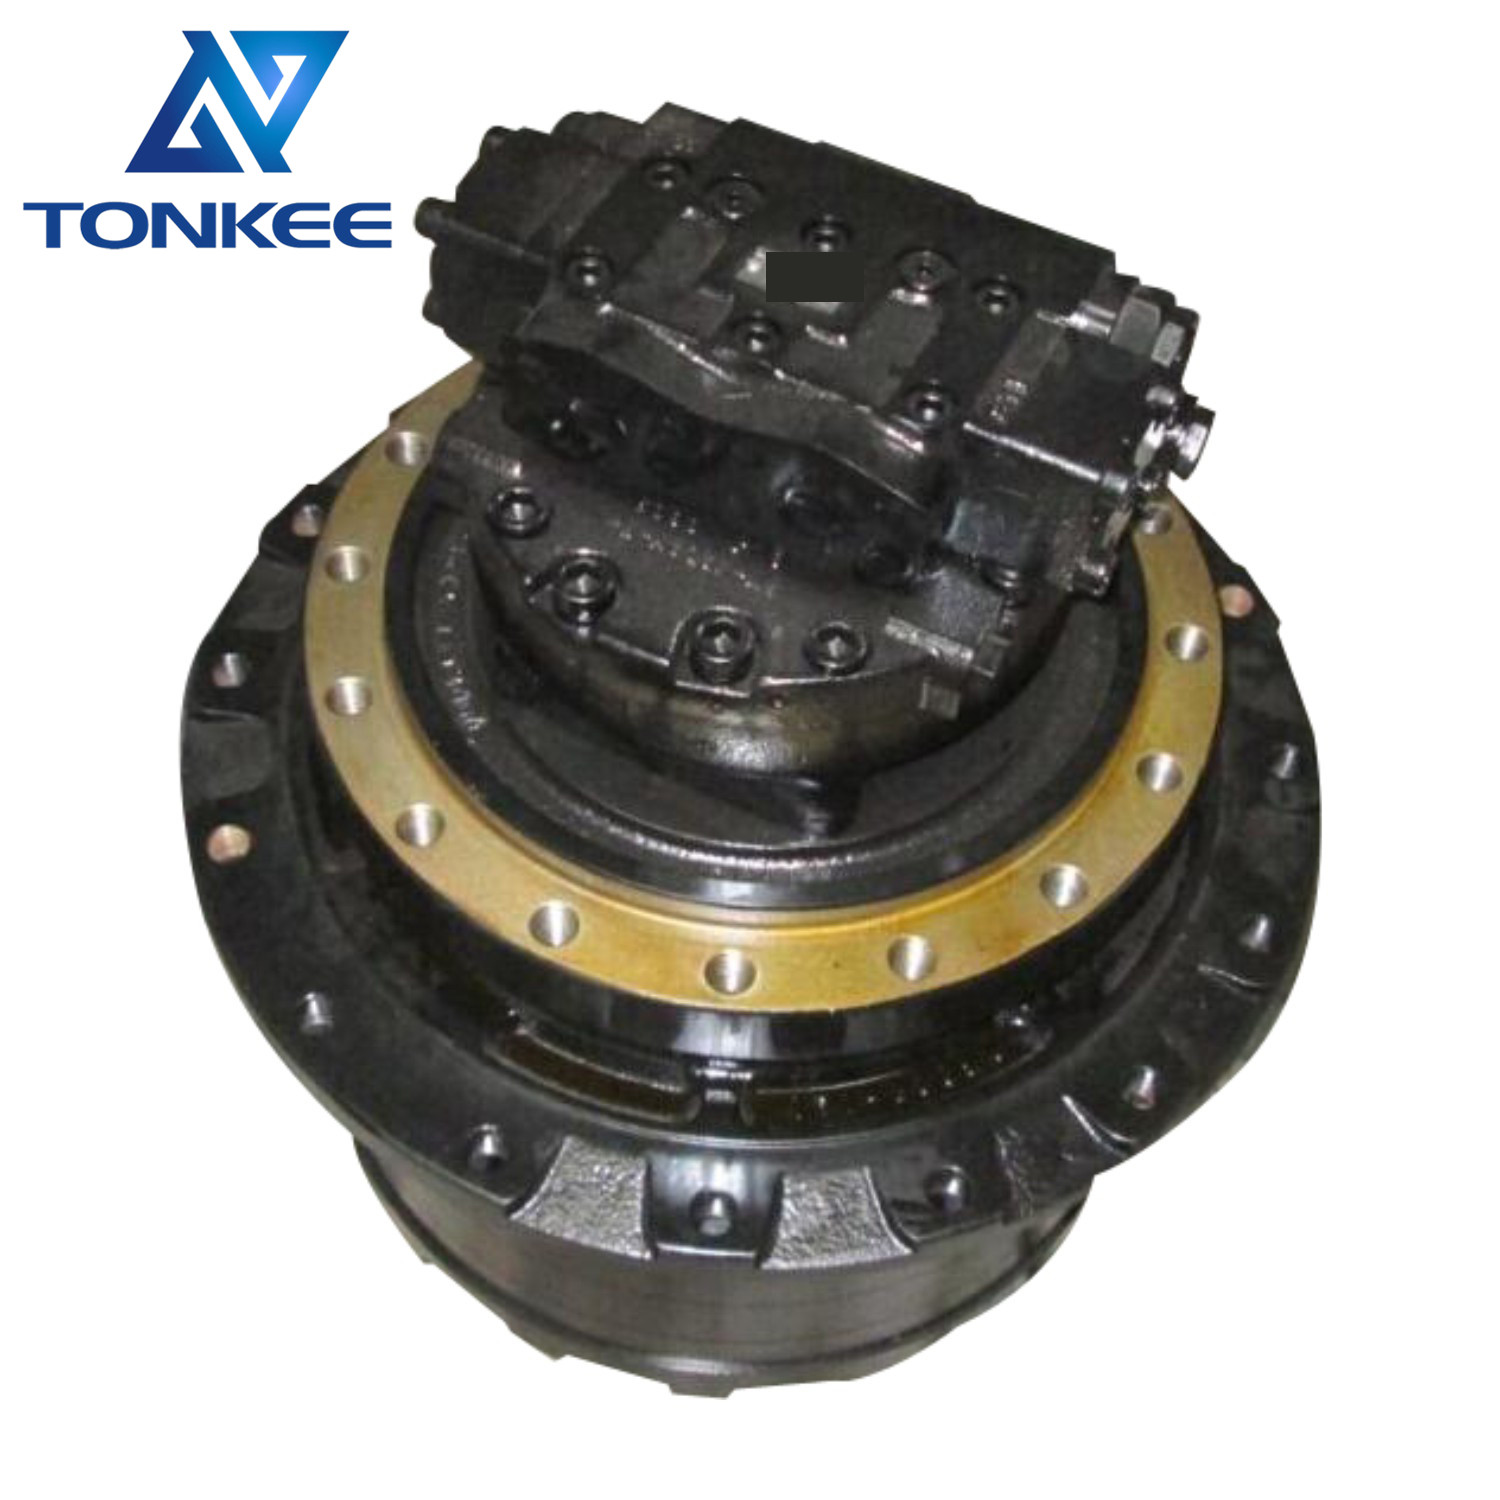 NEW 2159956 267-6877 378-9568 excavator final drive group E329D 329D travel motor assy for CAT